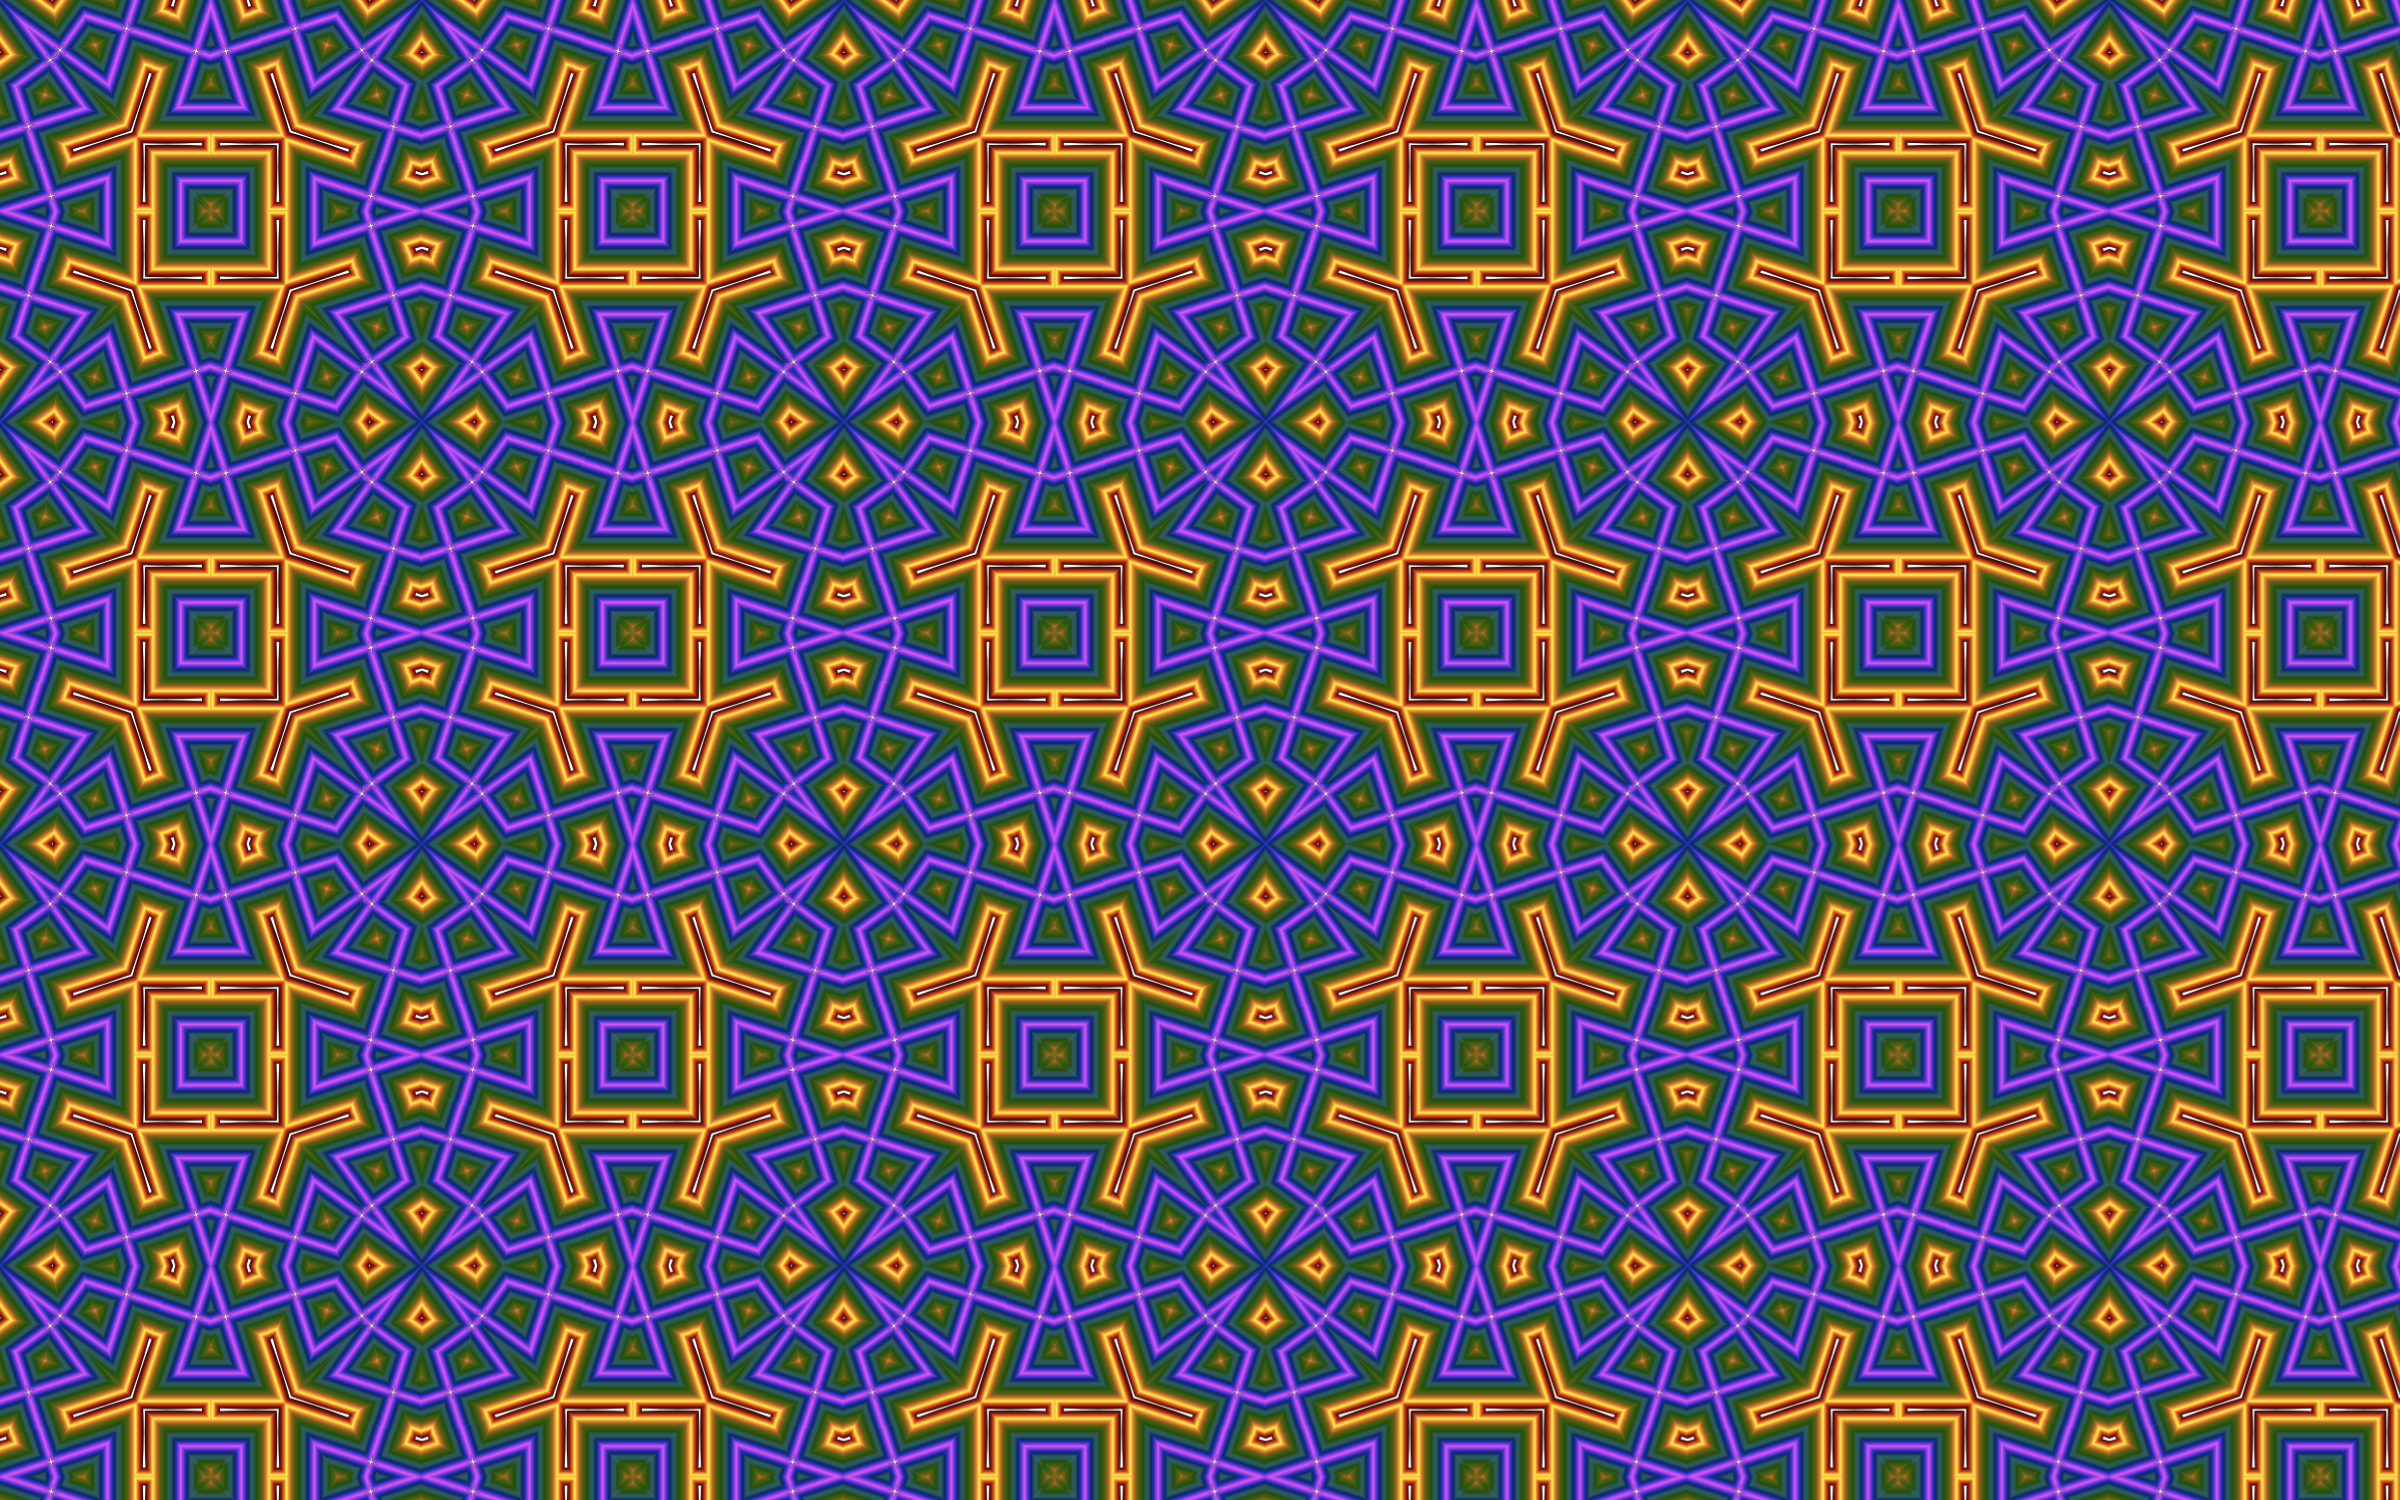 Seamless Pattern 117 by GDJ